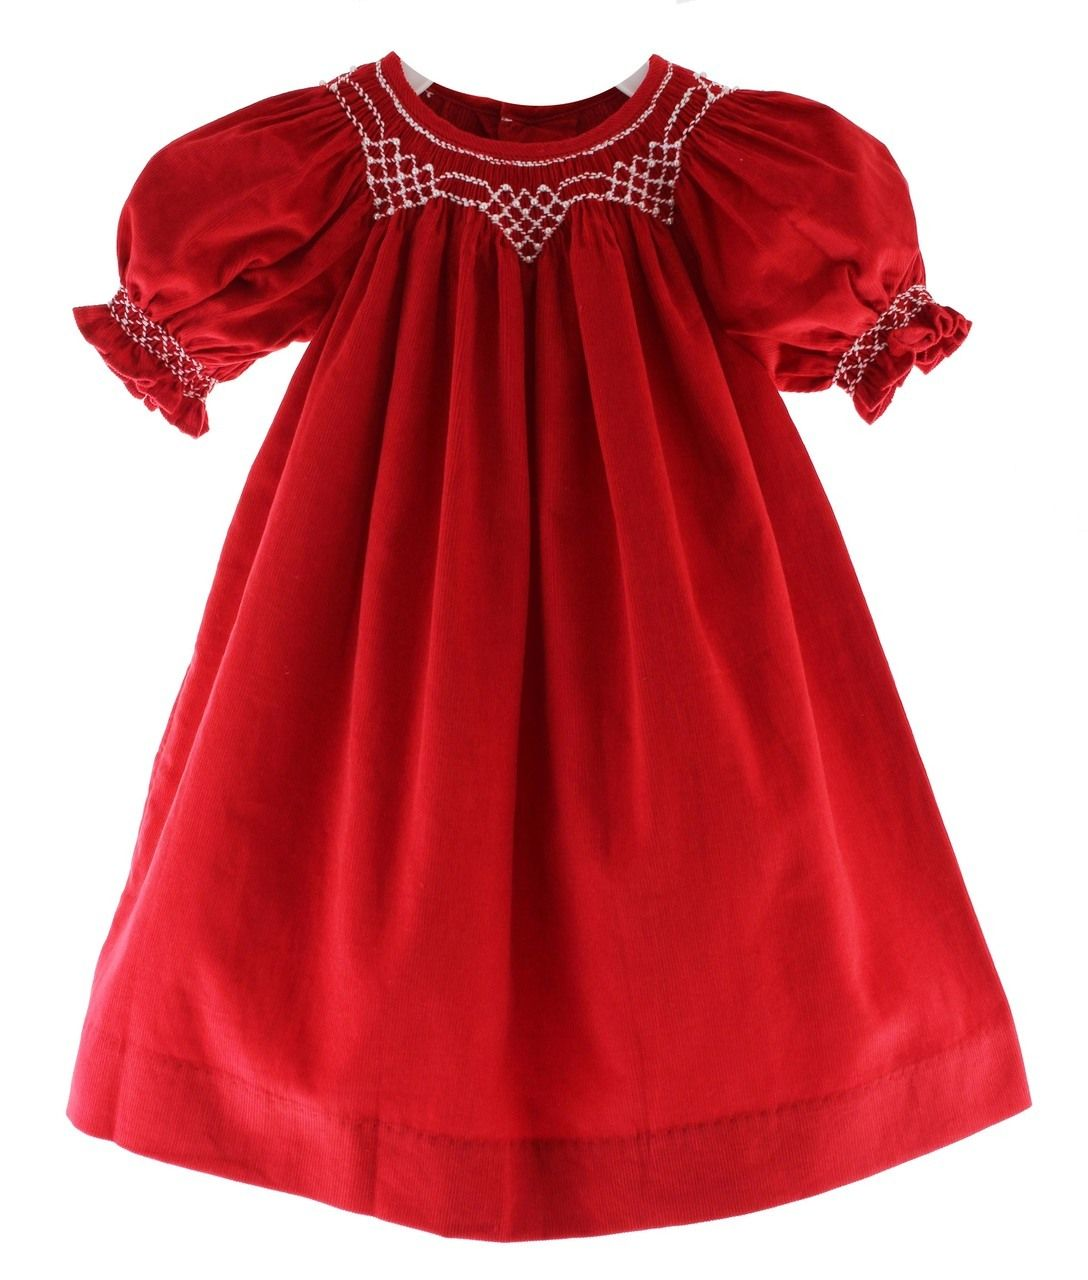 Hiccups Childrens Boutique - Girls Red Smocked Christmas Bishop